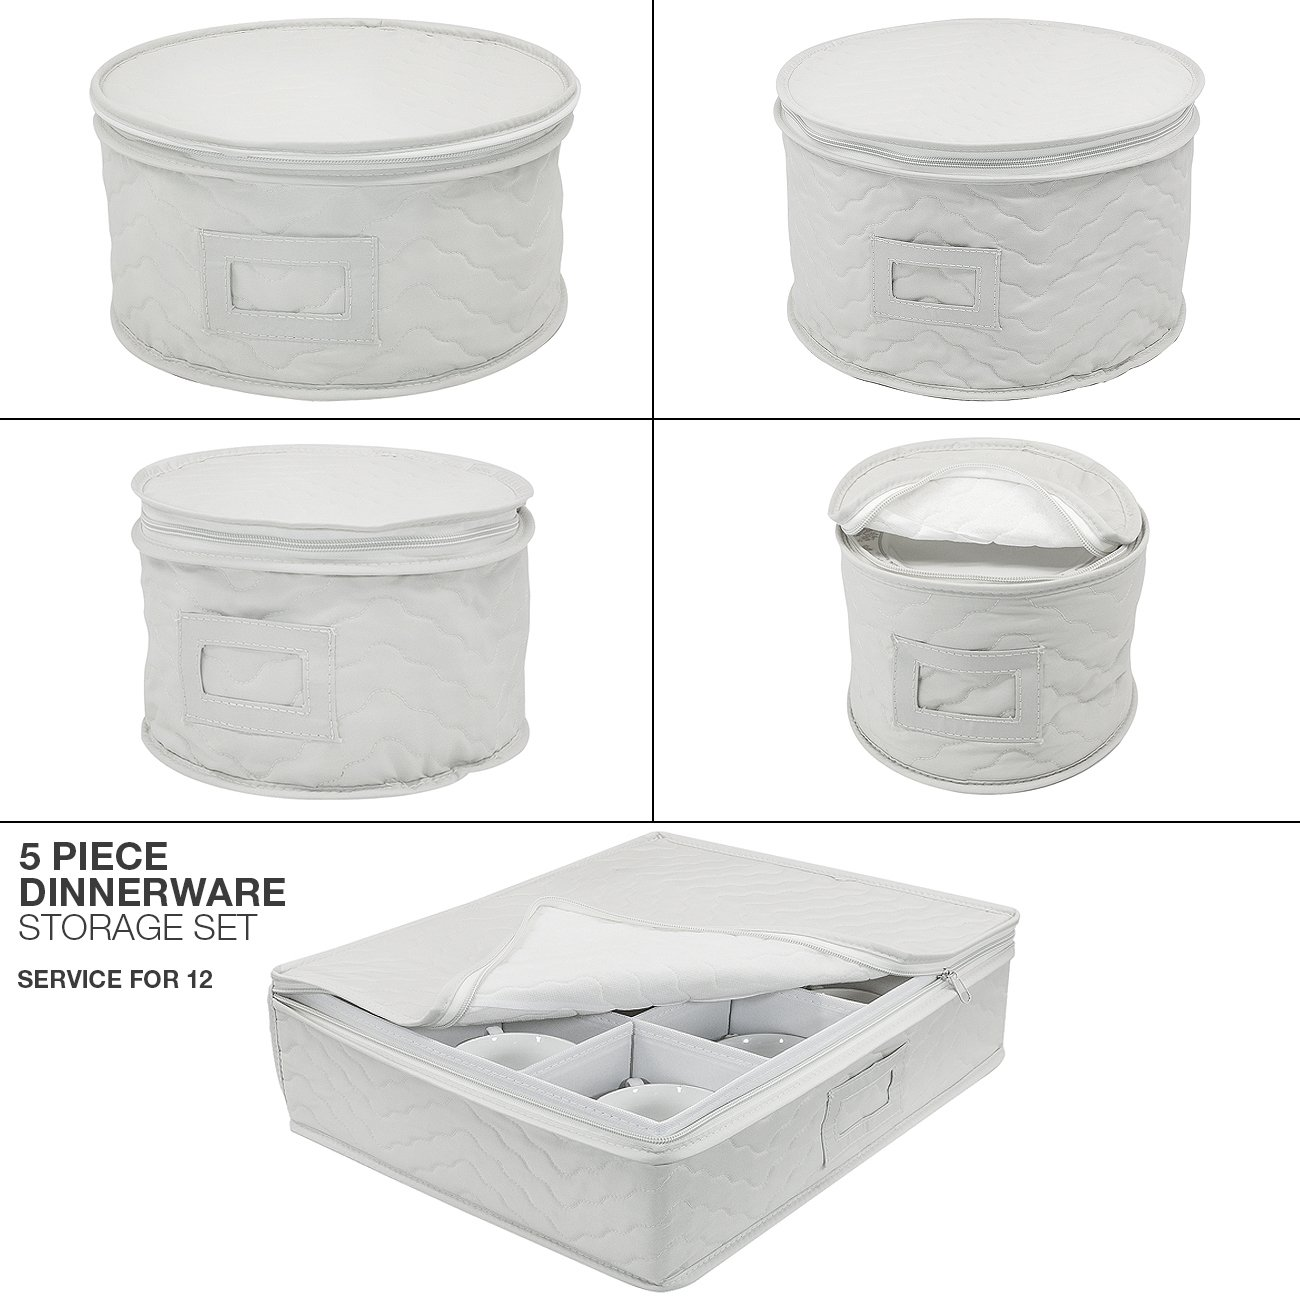 Amazoncom Sorbus Dinnerware Storage 5 Piece Set for Protecting or